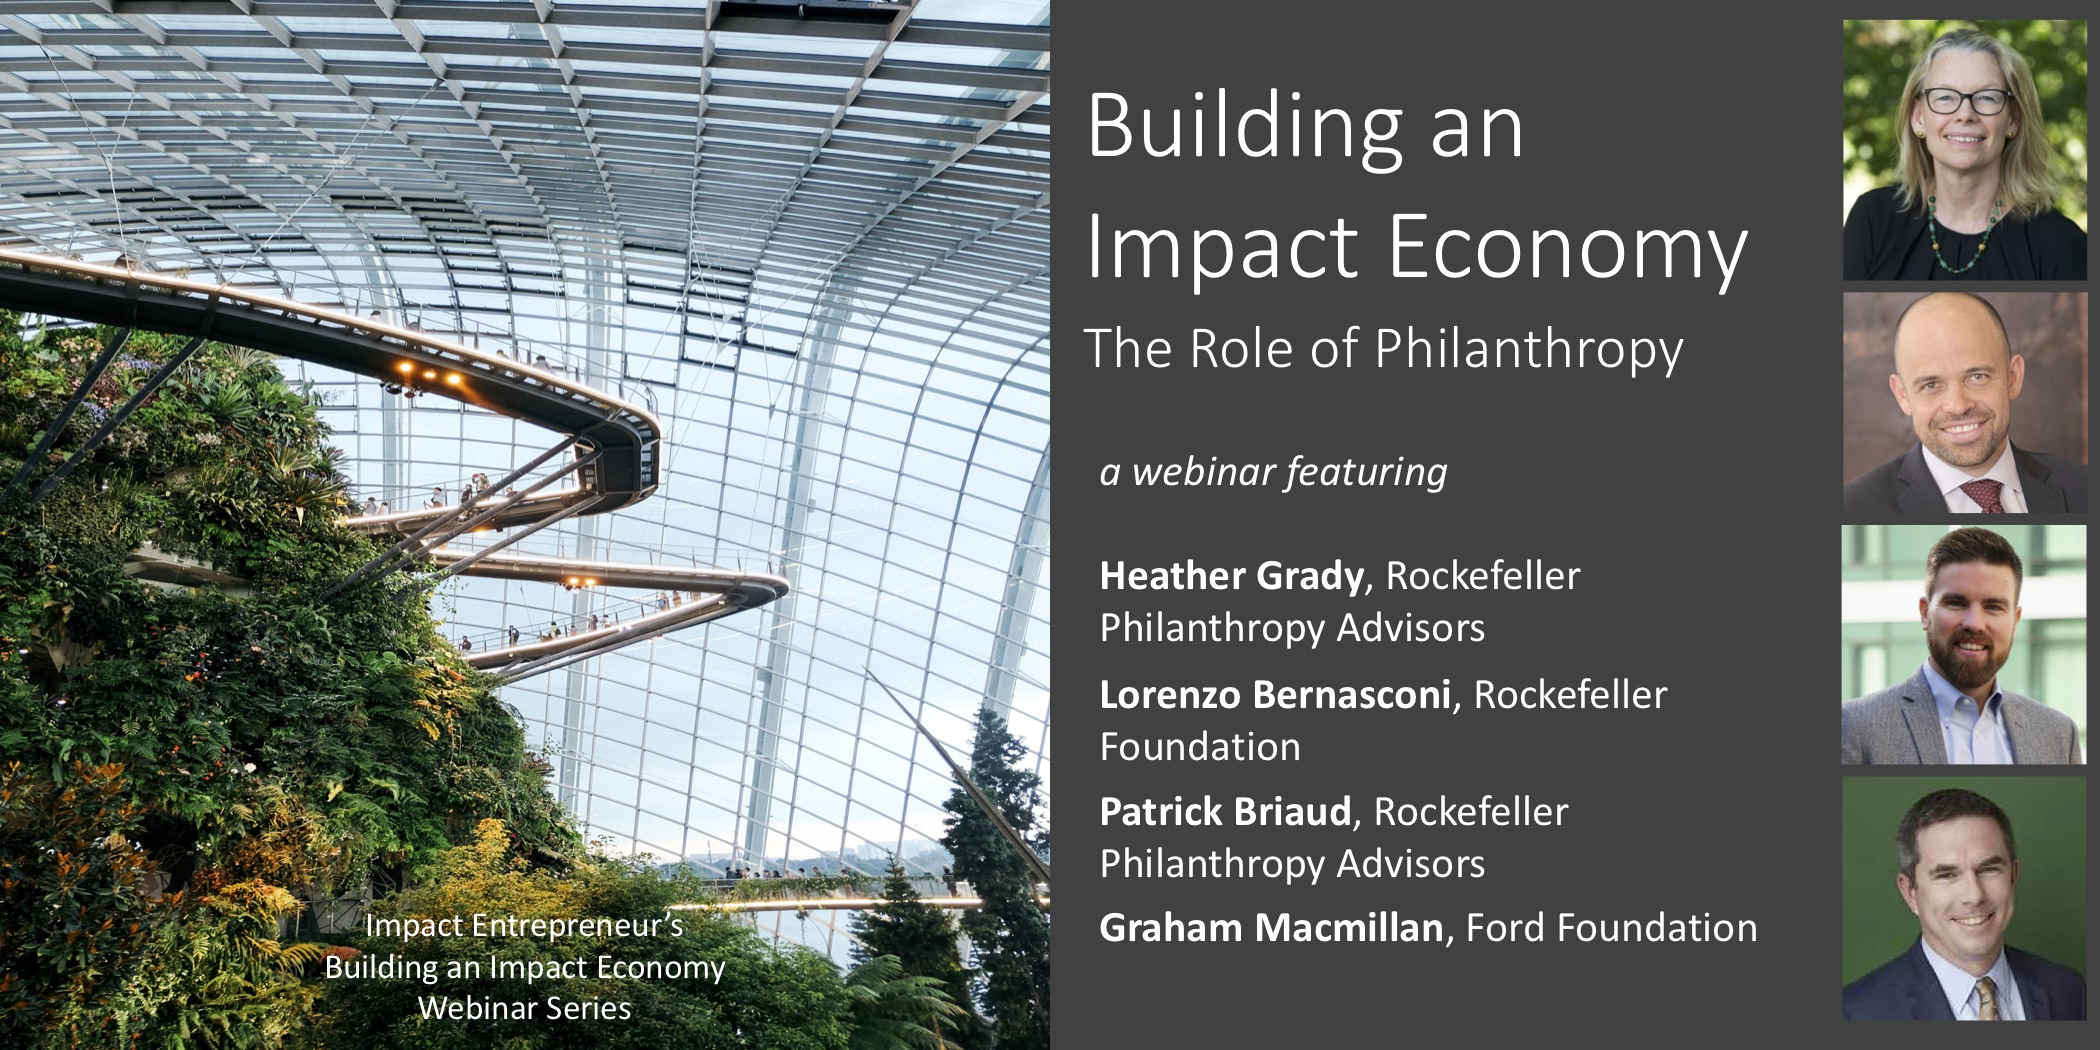 Building an Impact Economy Lead Image.jpg